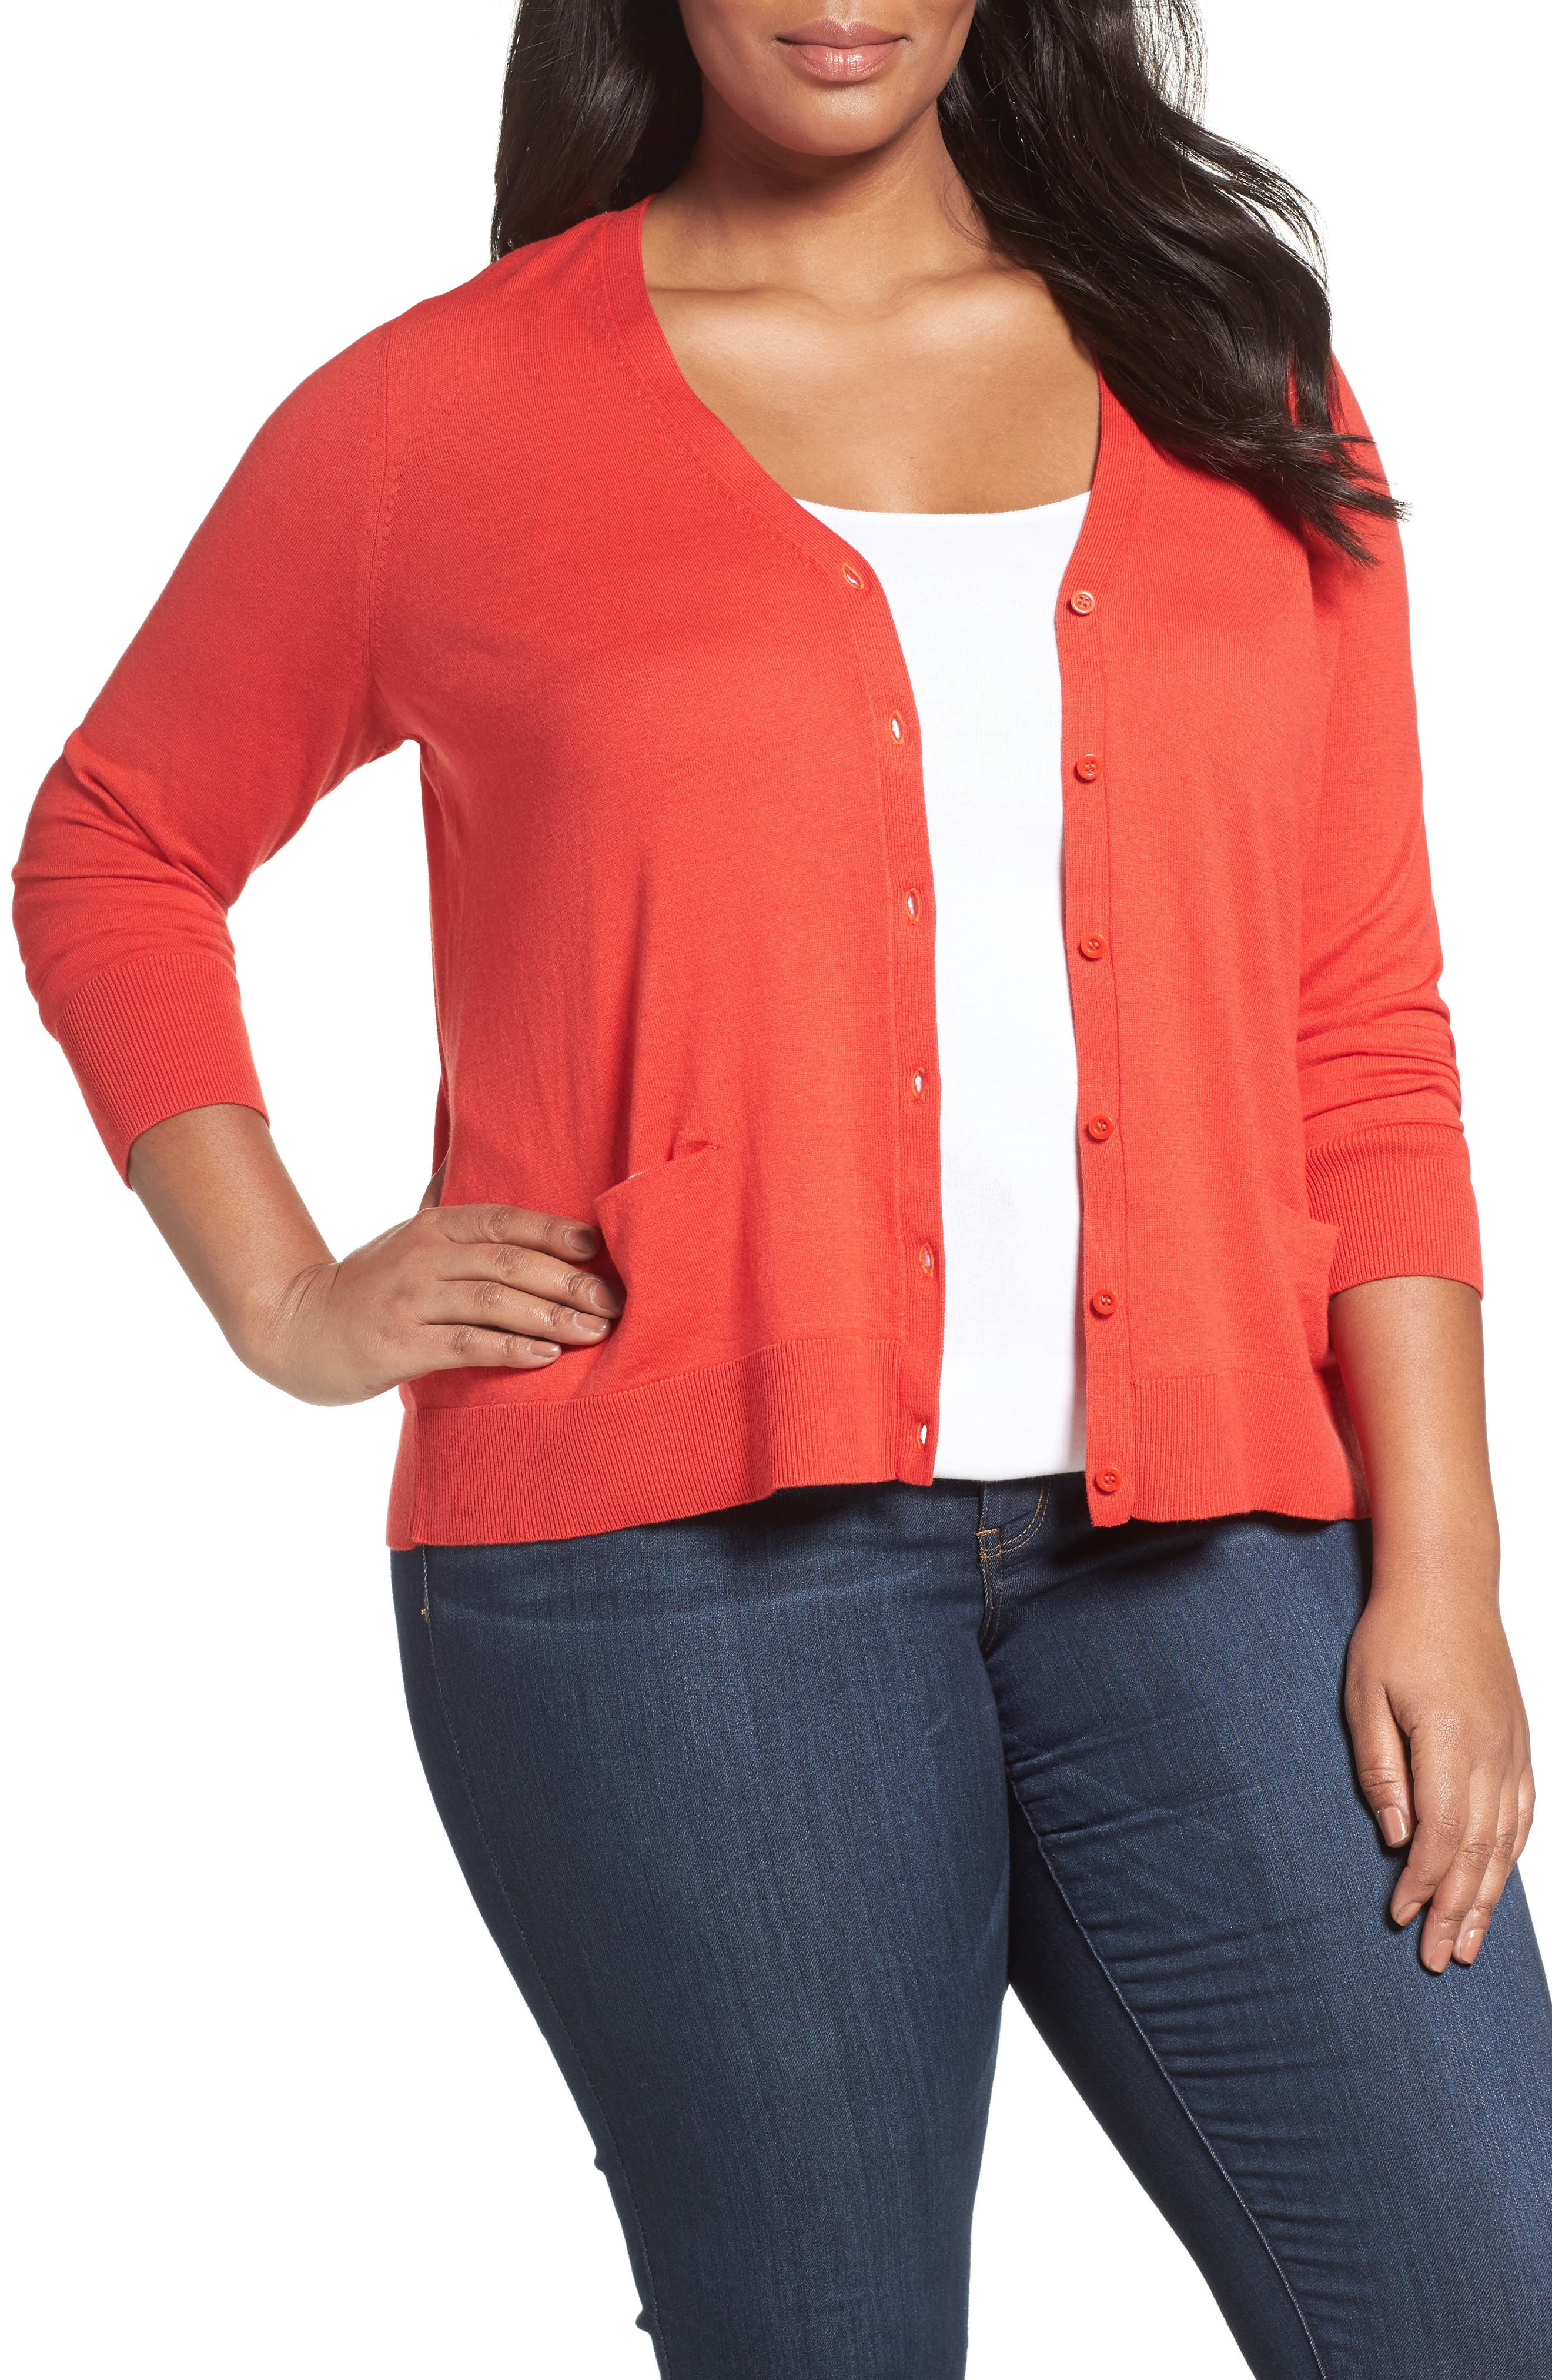 Shop for plus size sweaters at truemfilesb5q.gq Basic styles always available online at truemfilesb5q.gq Free shipping available!